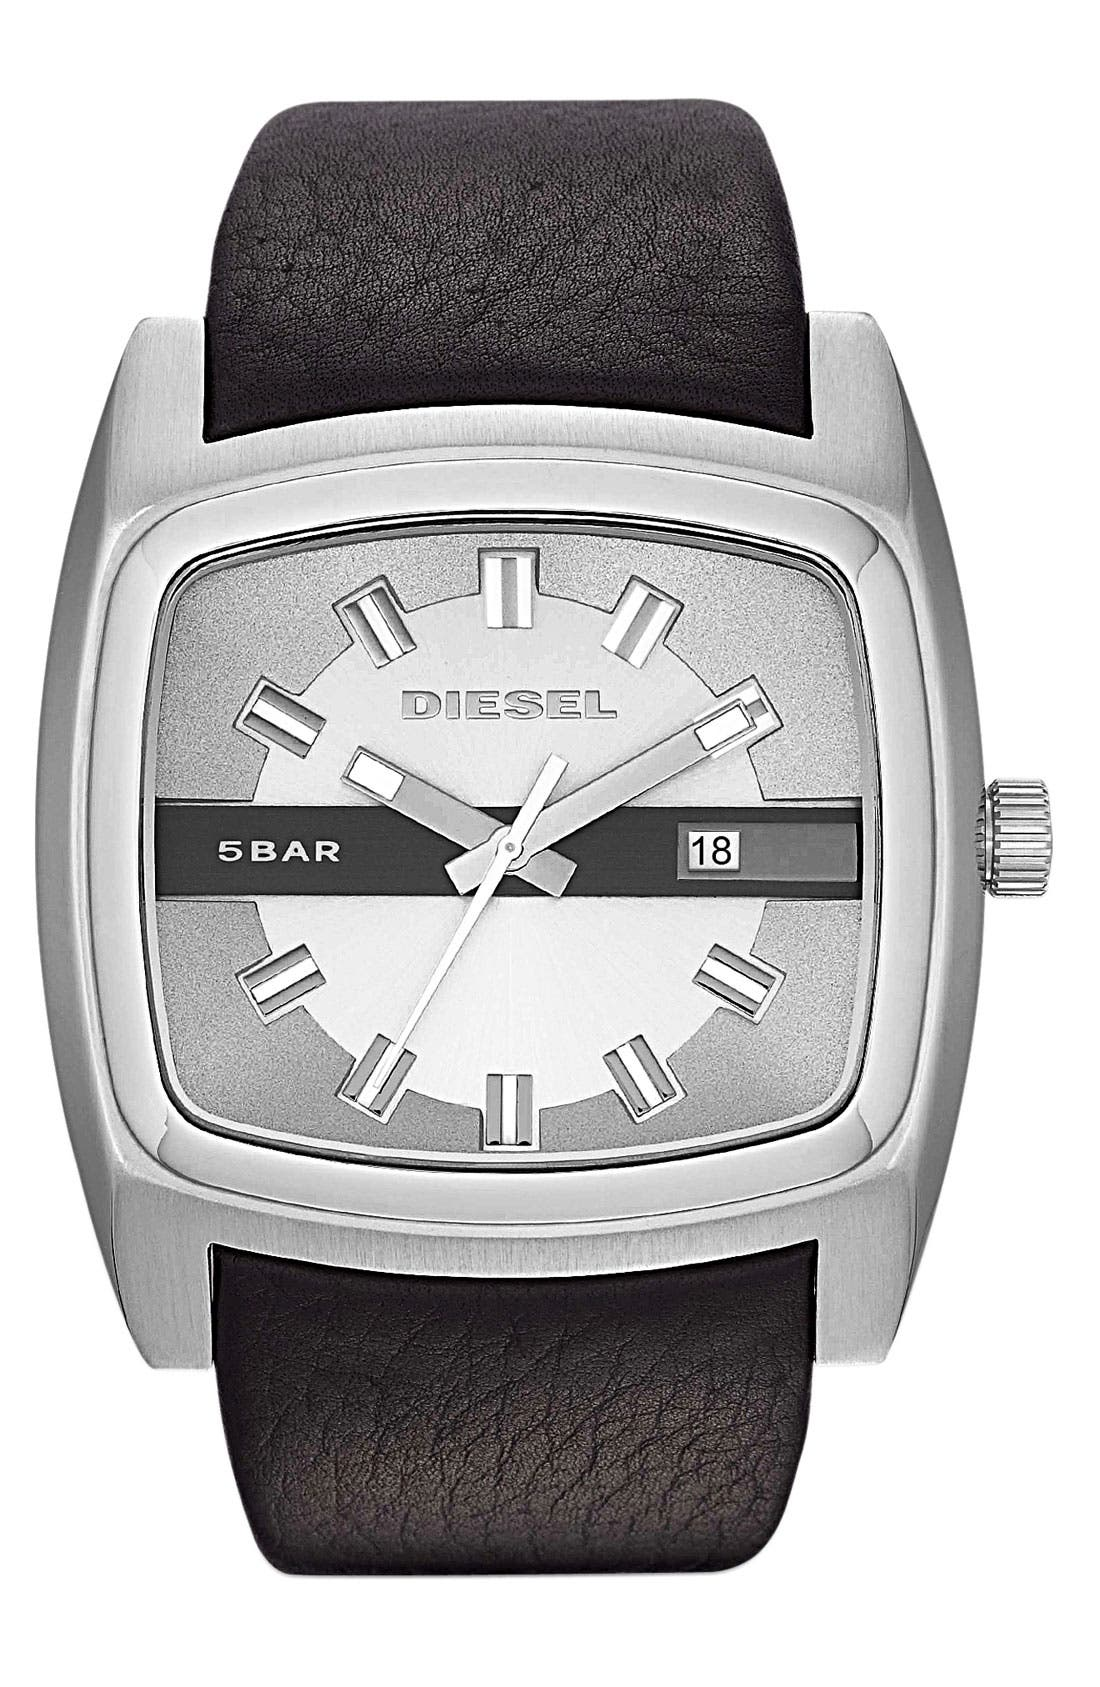 Main Image - DIESEL® 'Mr. Red' Leather Strap Watch, 53mm x 47mm